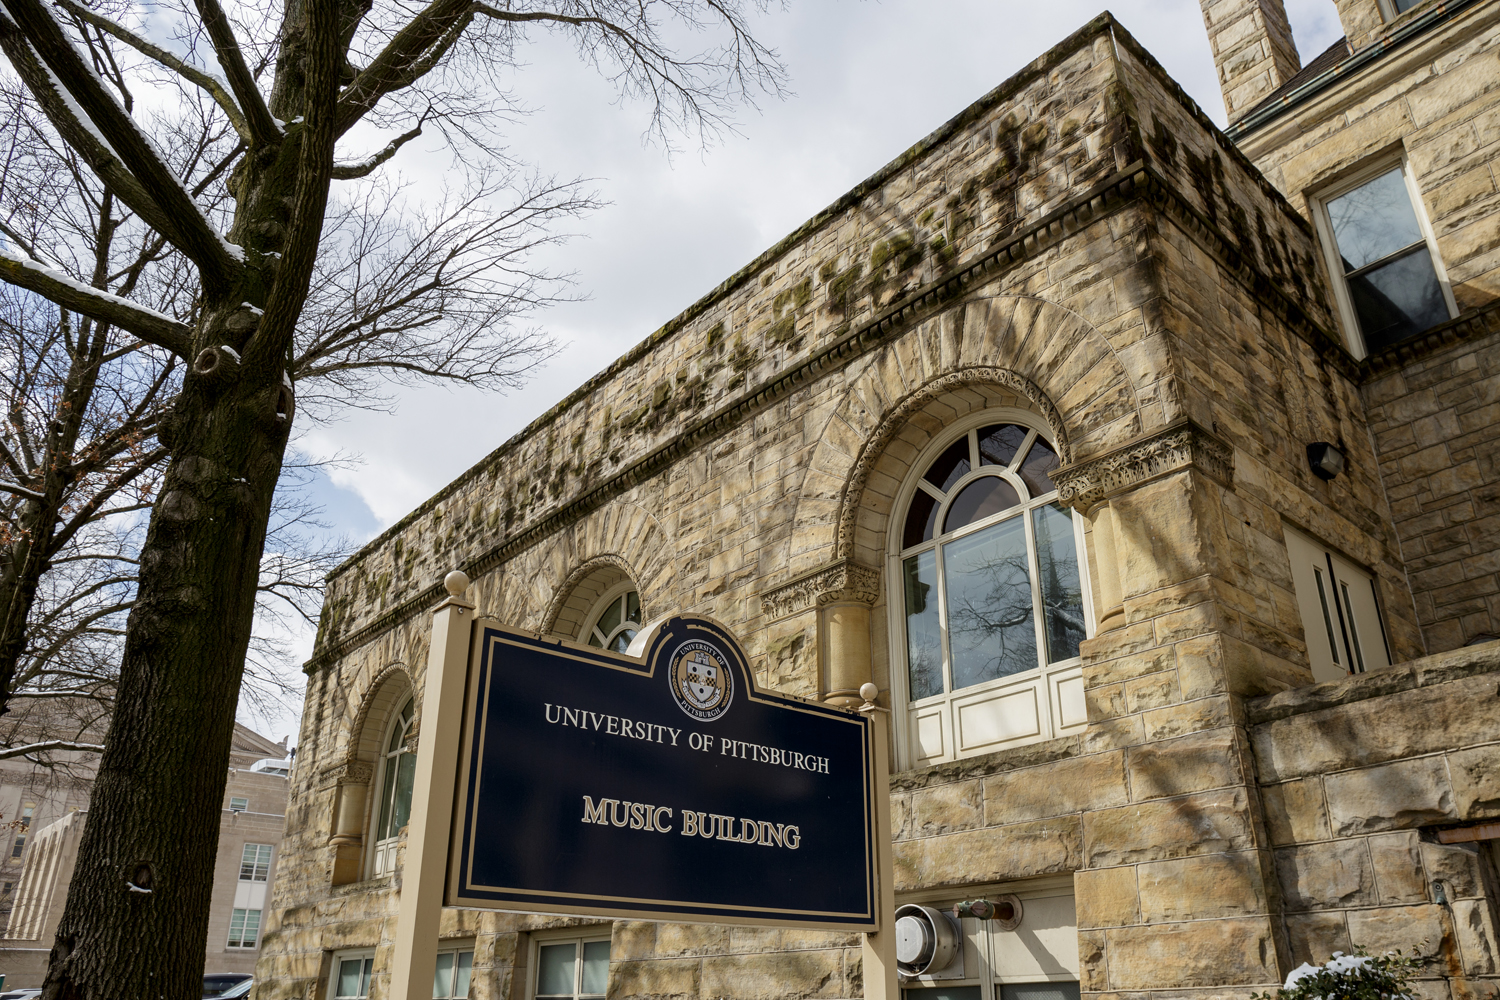 The finalized Campus Master Plan details plans to move the department of music out of the historic Music Building.